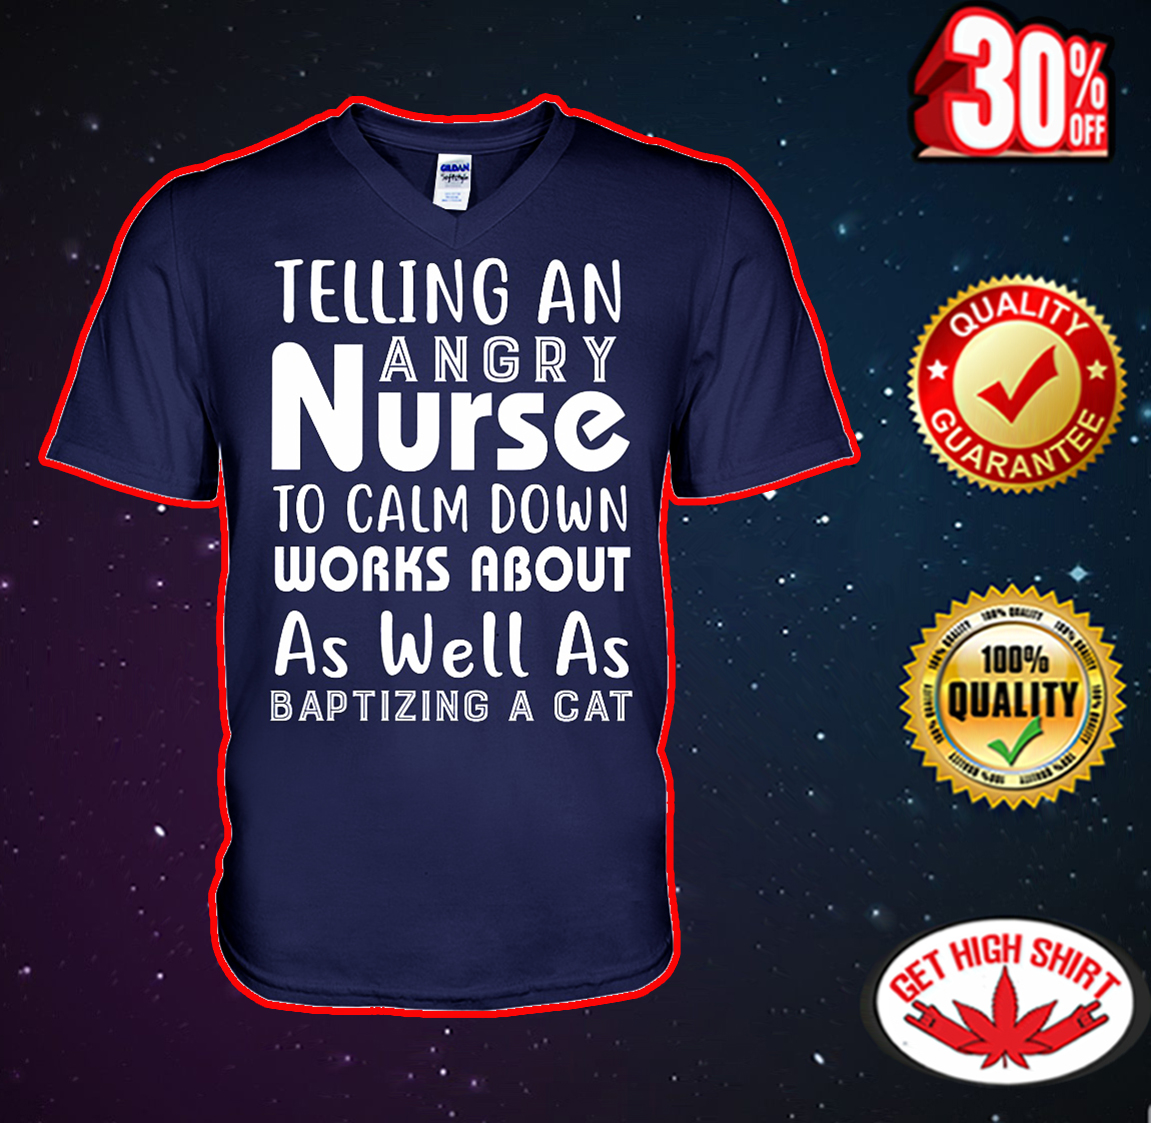 Telling an angry nurse to calm down works about as well as baptizing a cat v-neck